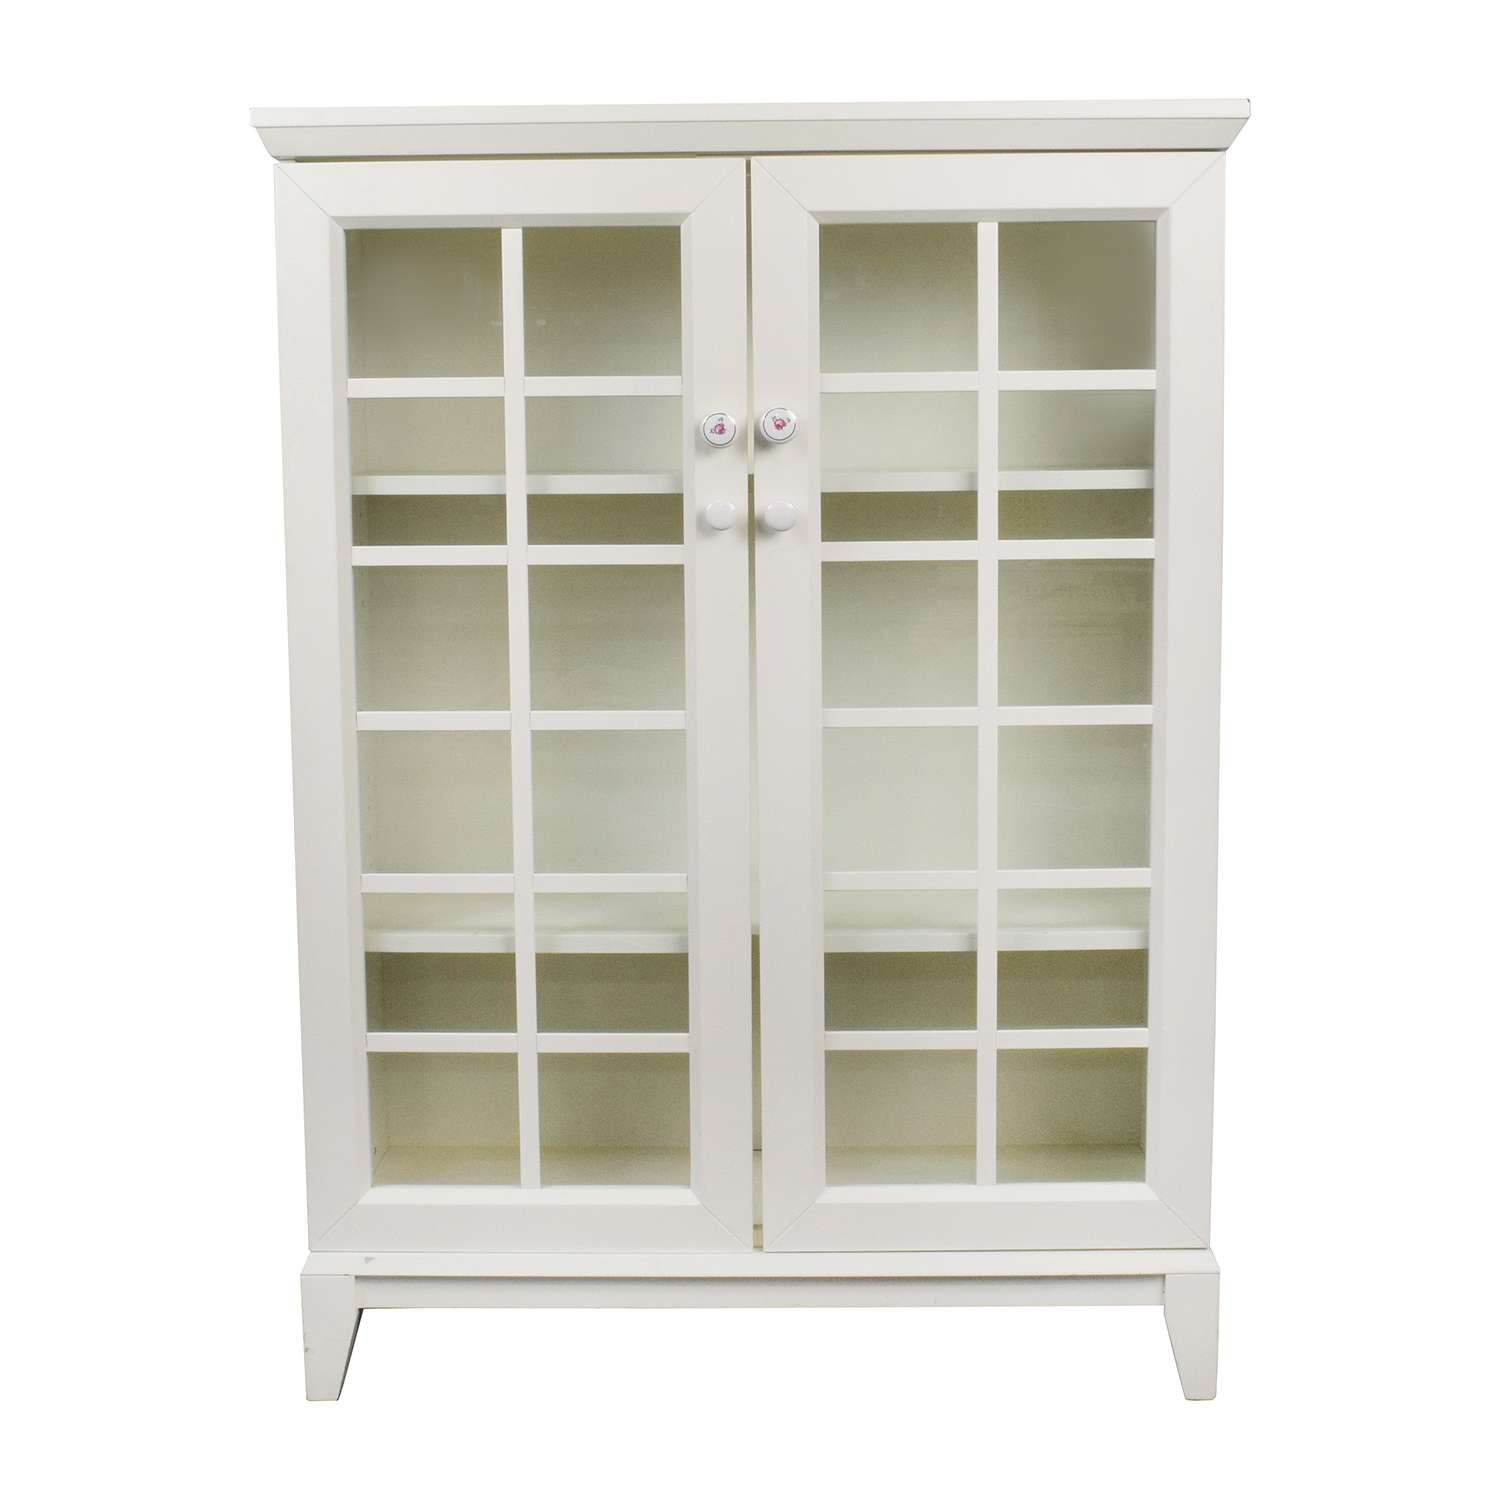 48% Off – Crate And Barrel Crate And Barrel White China Cabinet Inside Crate And Barrel Sideboards (Gallery 7 of 20)